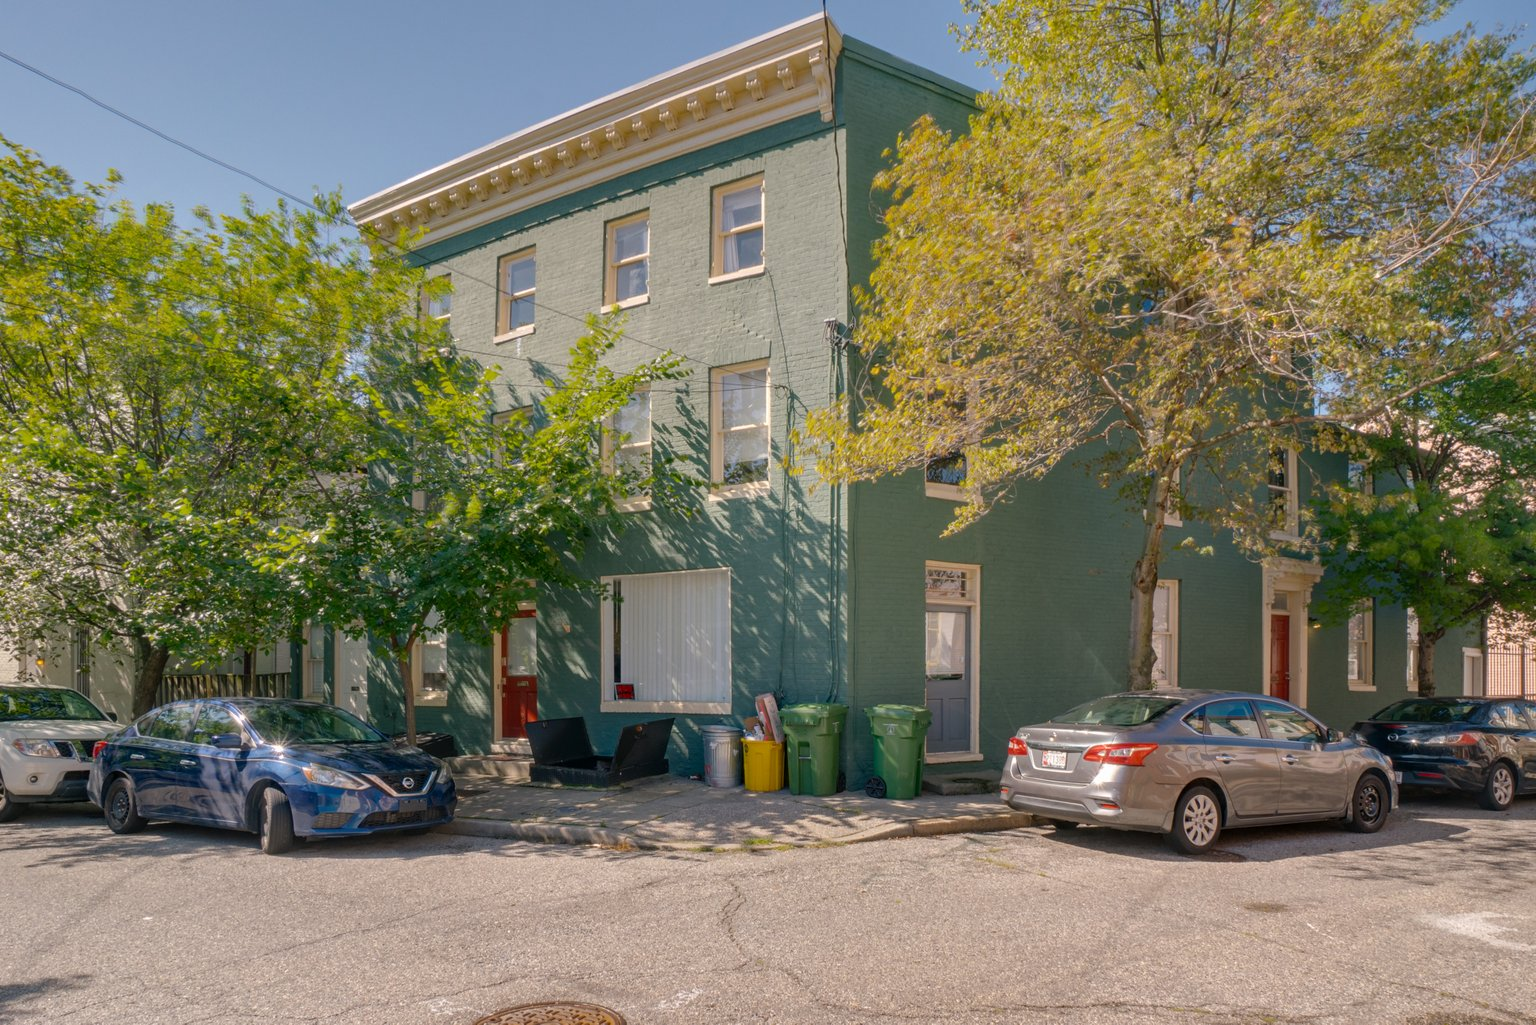 312 Emory Street: 3 Apartments in the heart of Ridgely's Delight / Recently Renovated/ Fully Leased